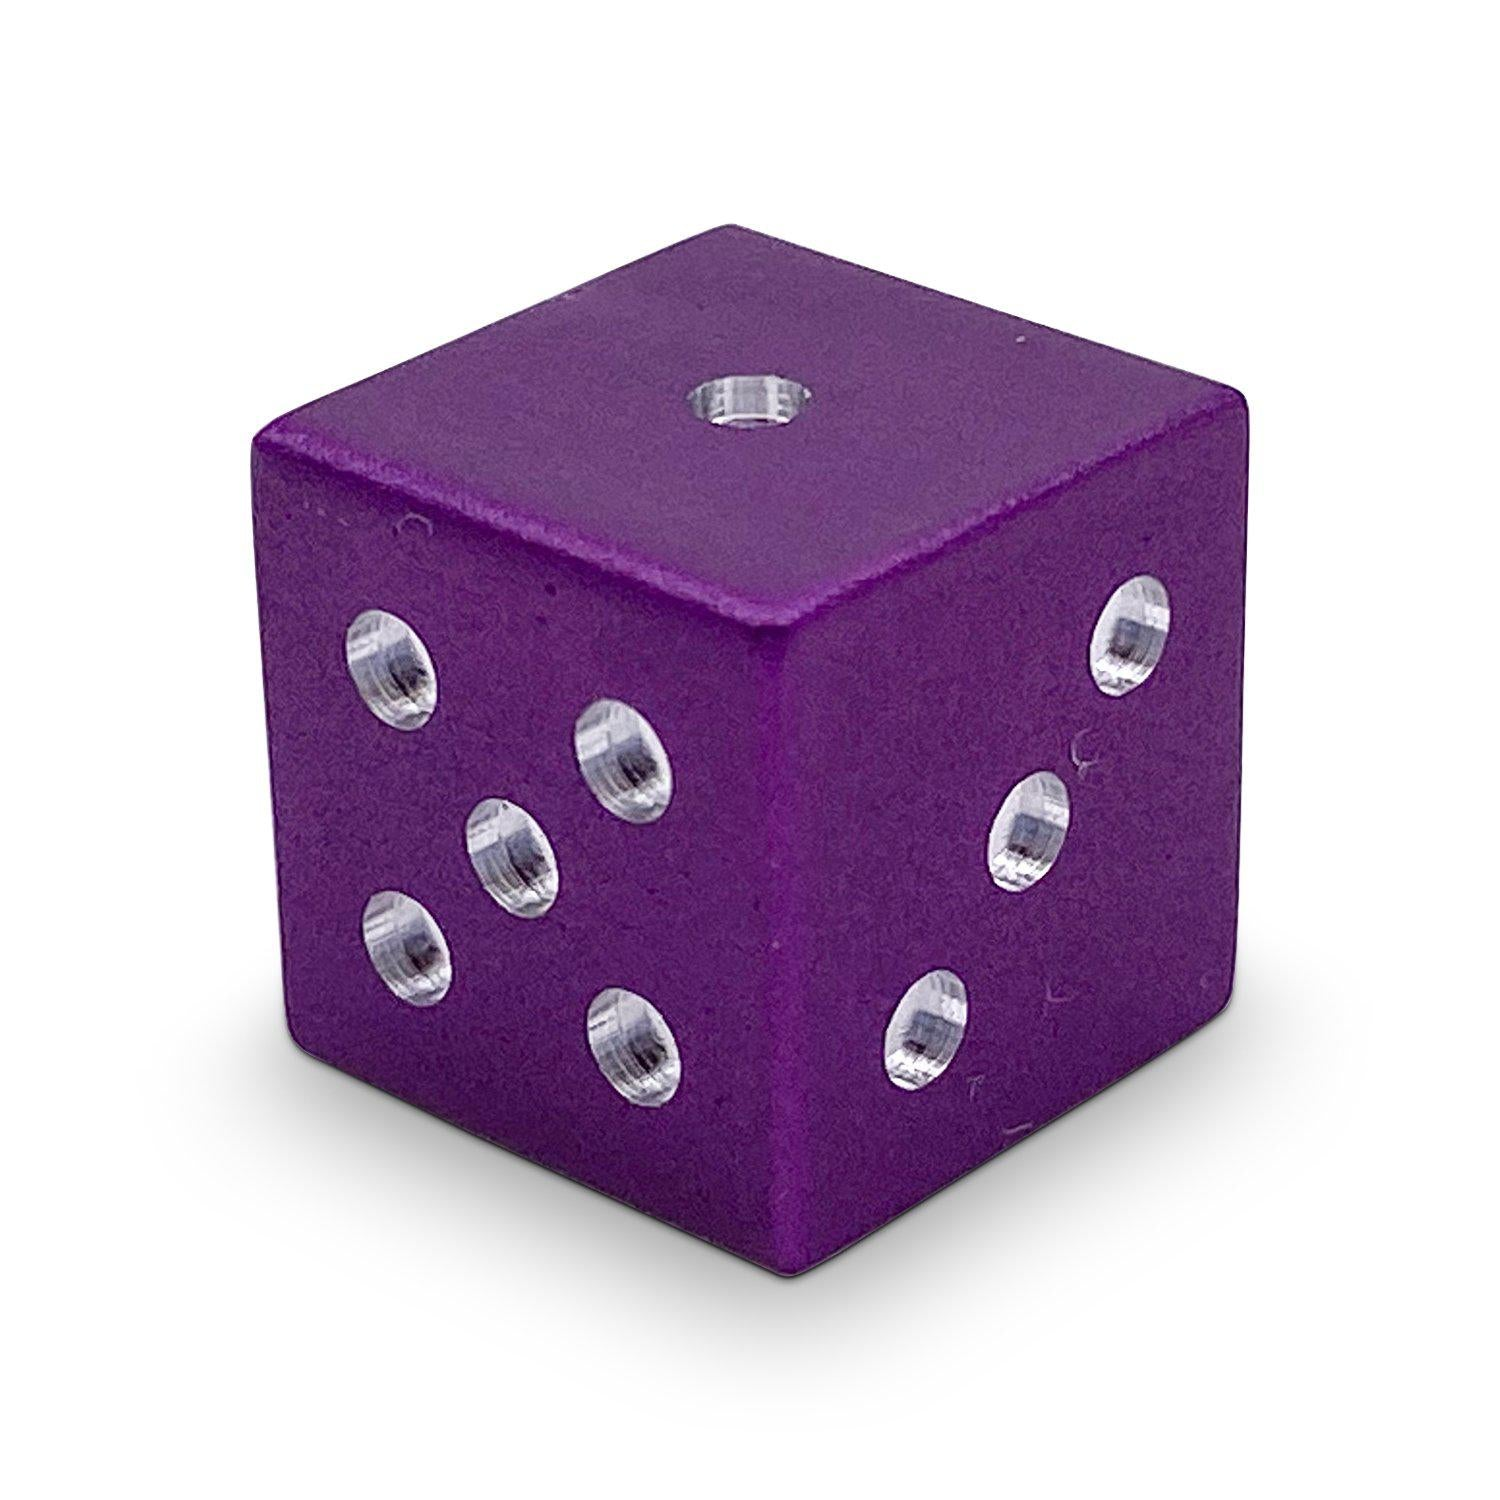 Single Aluminum D6 Mini - Straight Edges - Lich Purple